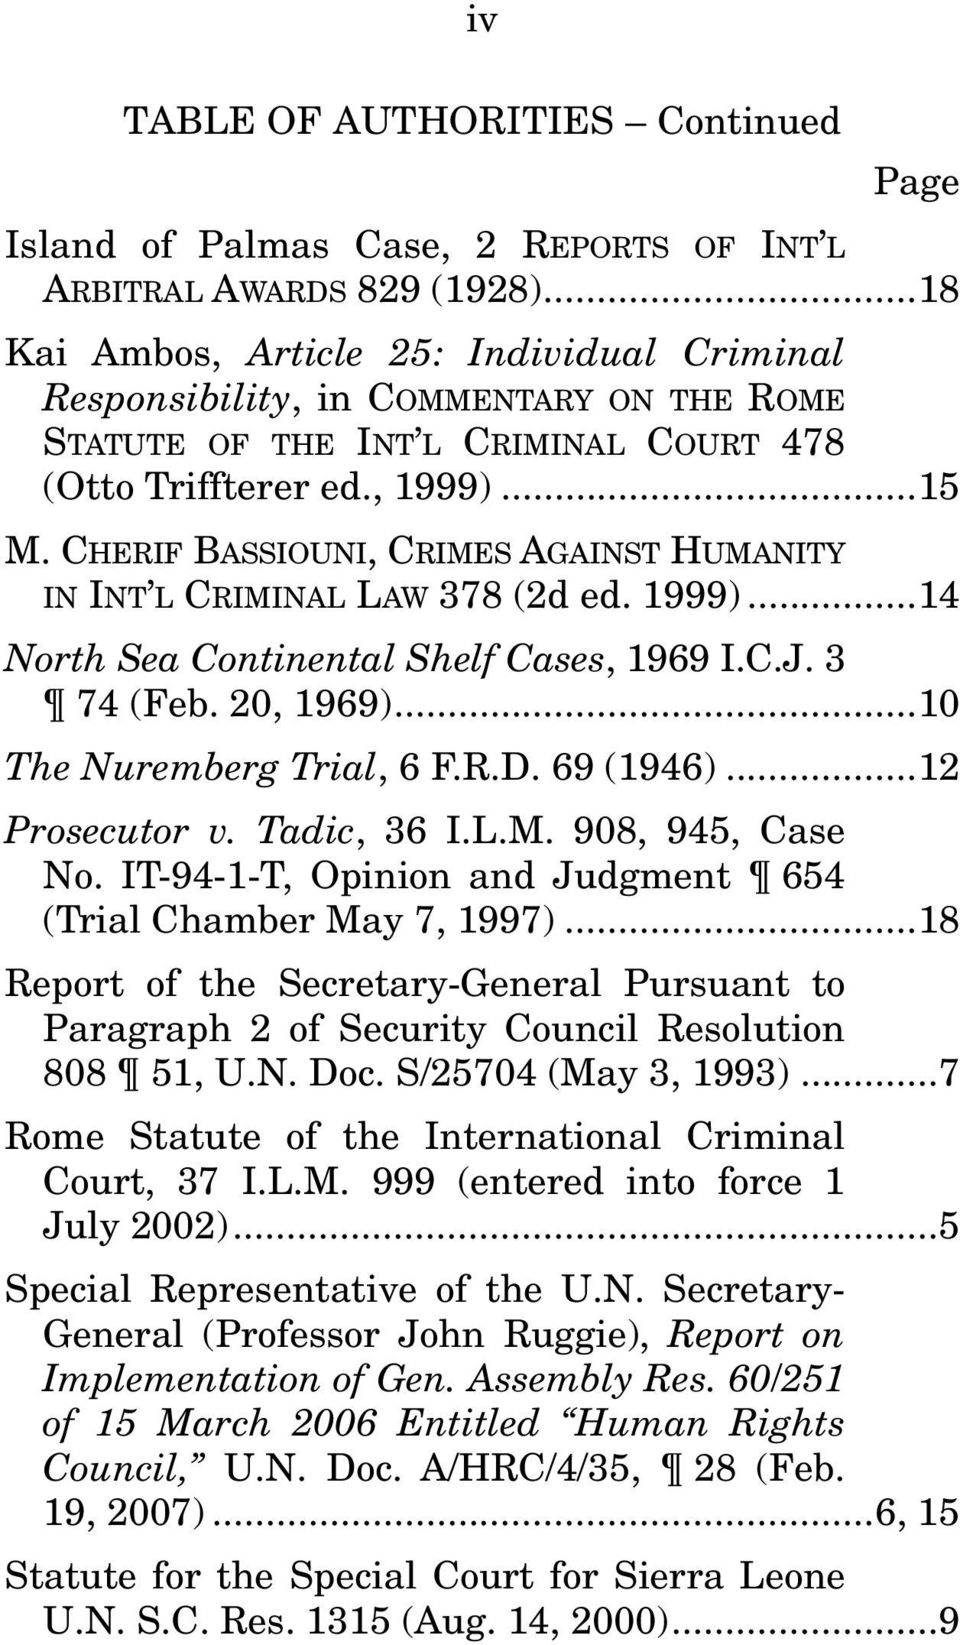 CHERIF BASSIOUNI, CRIMES AGAINST HUMANITY IN INT L CRIMINAL LAW 378 (2d ed. 1999)... 14 North Sea Continental Shelf Cases, 1969 I.C.J. 3 74 (Feb. 20, 1969)... 10 The Nuremberg Trial, 6 F.R.D.